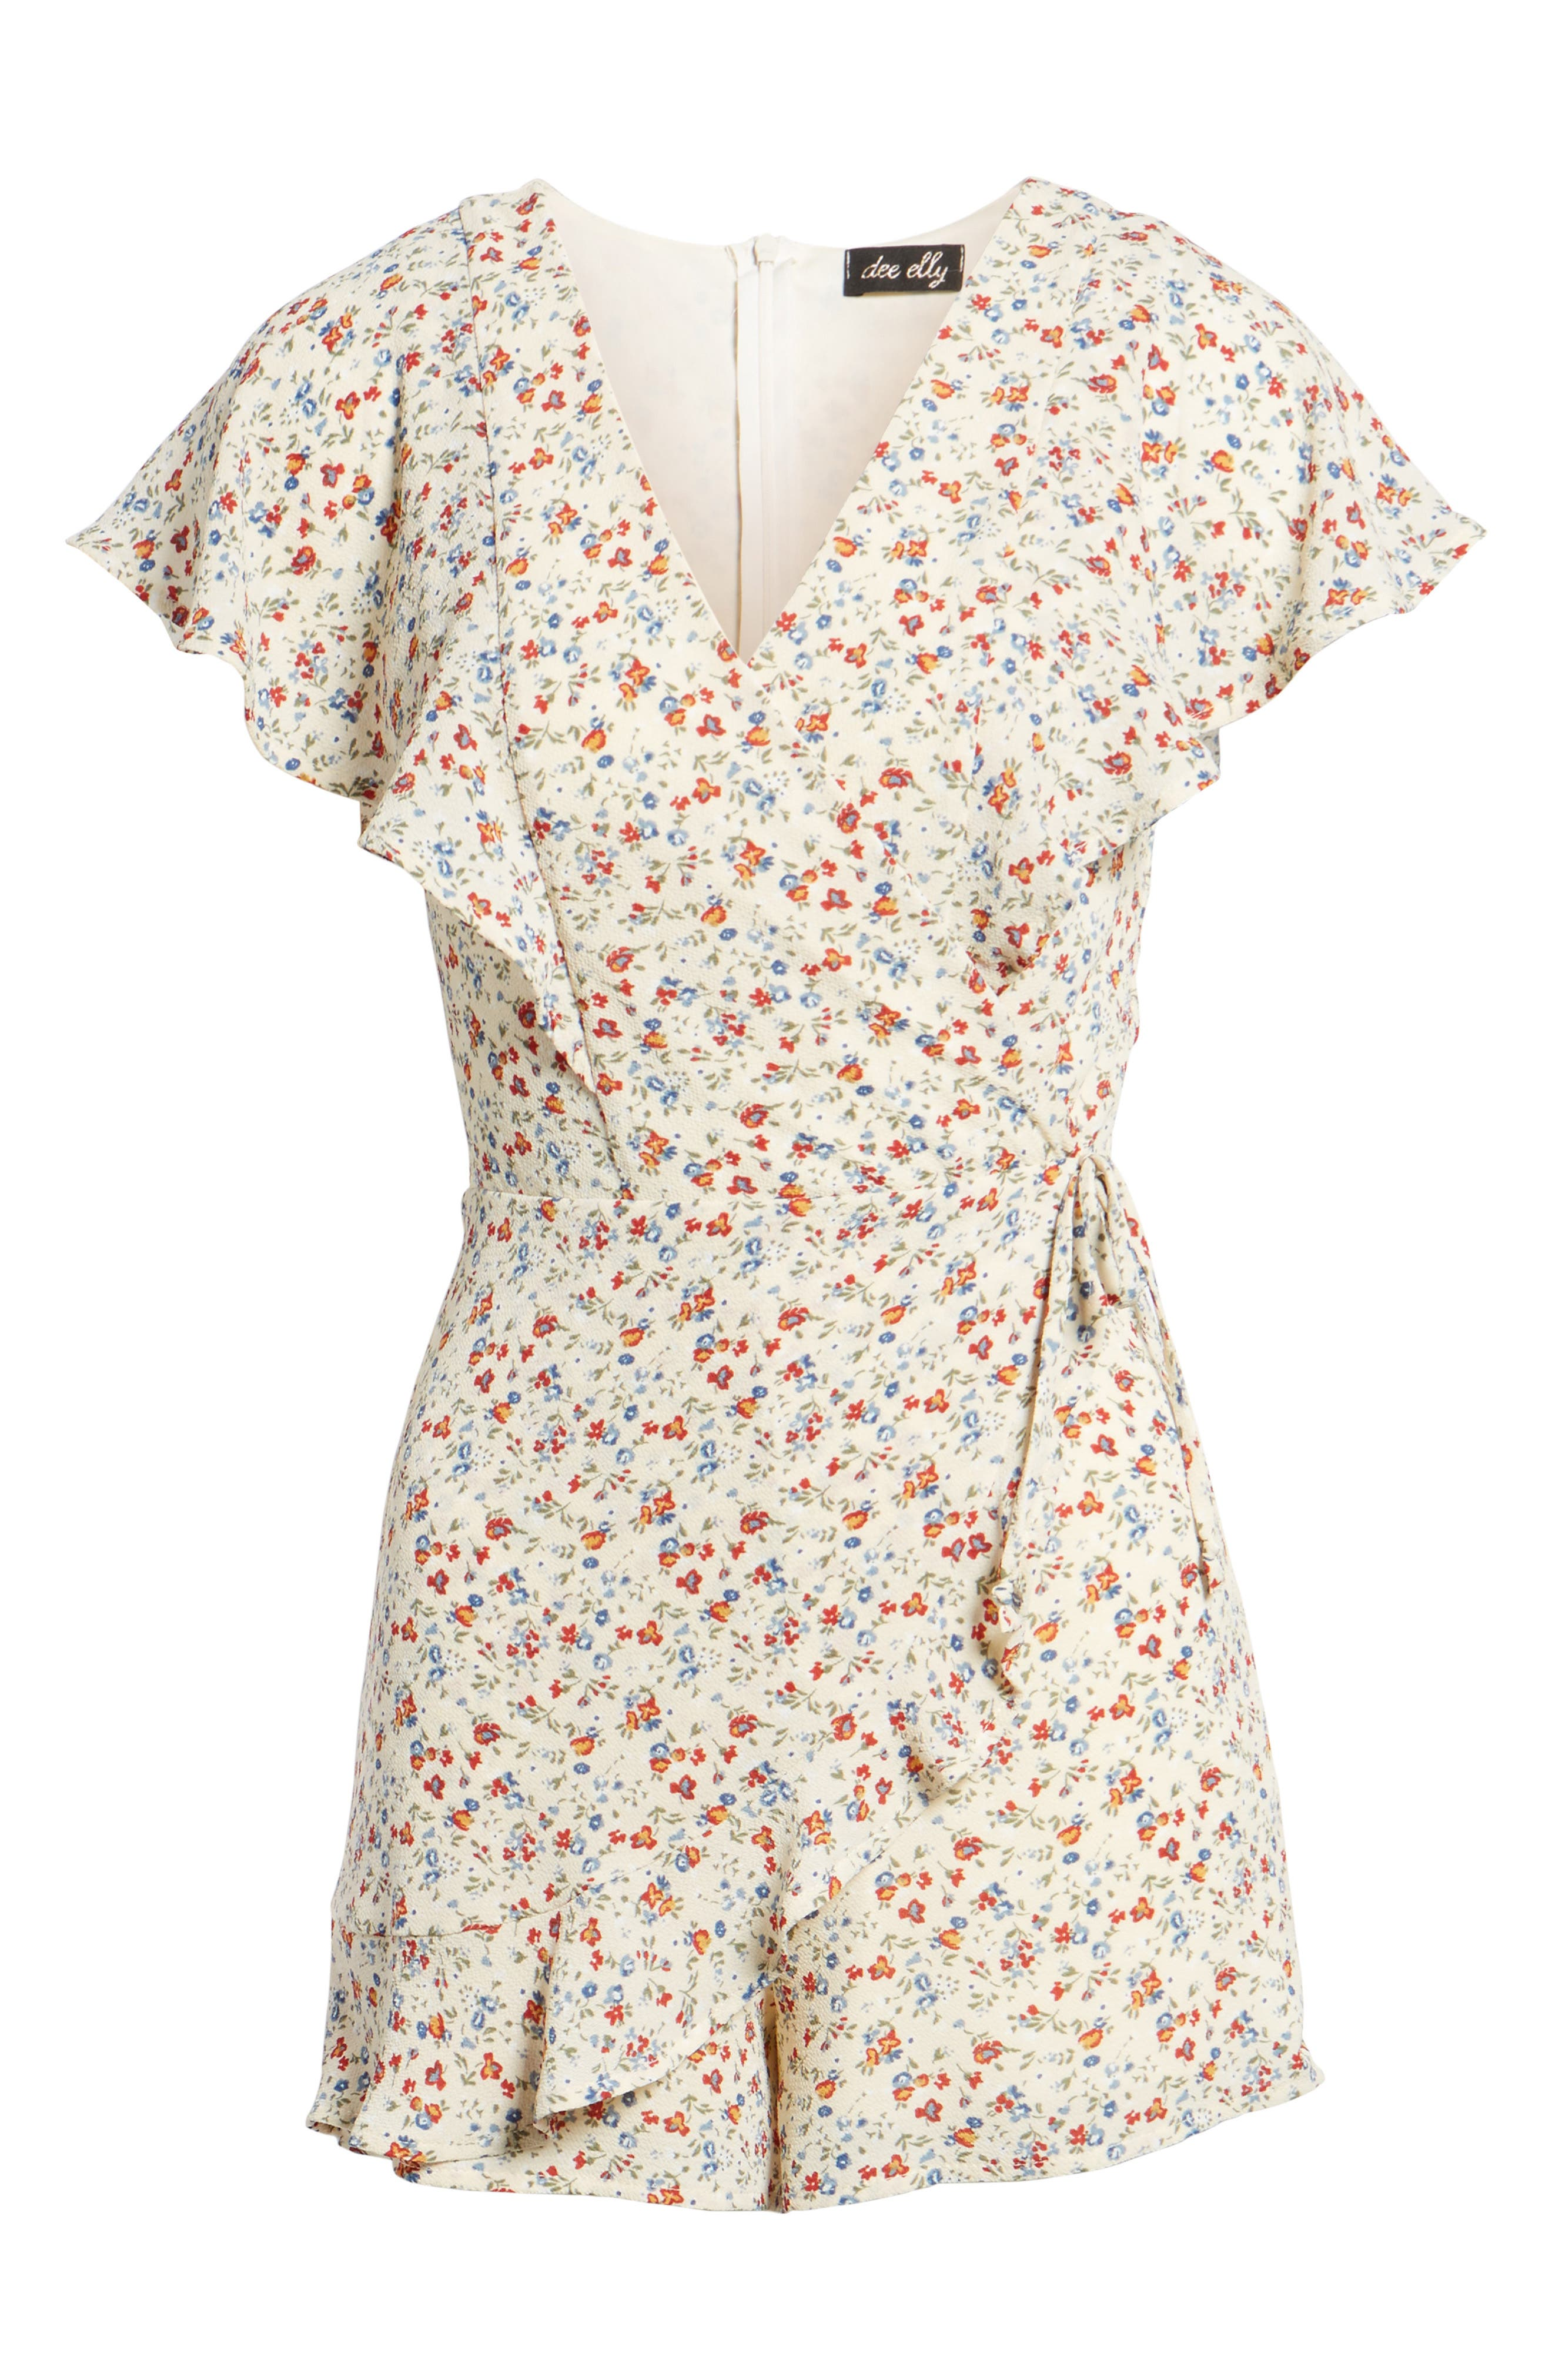 Ruffle Romper,                             Alternate thumbnail 6, color,                             Taupe Floral